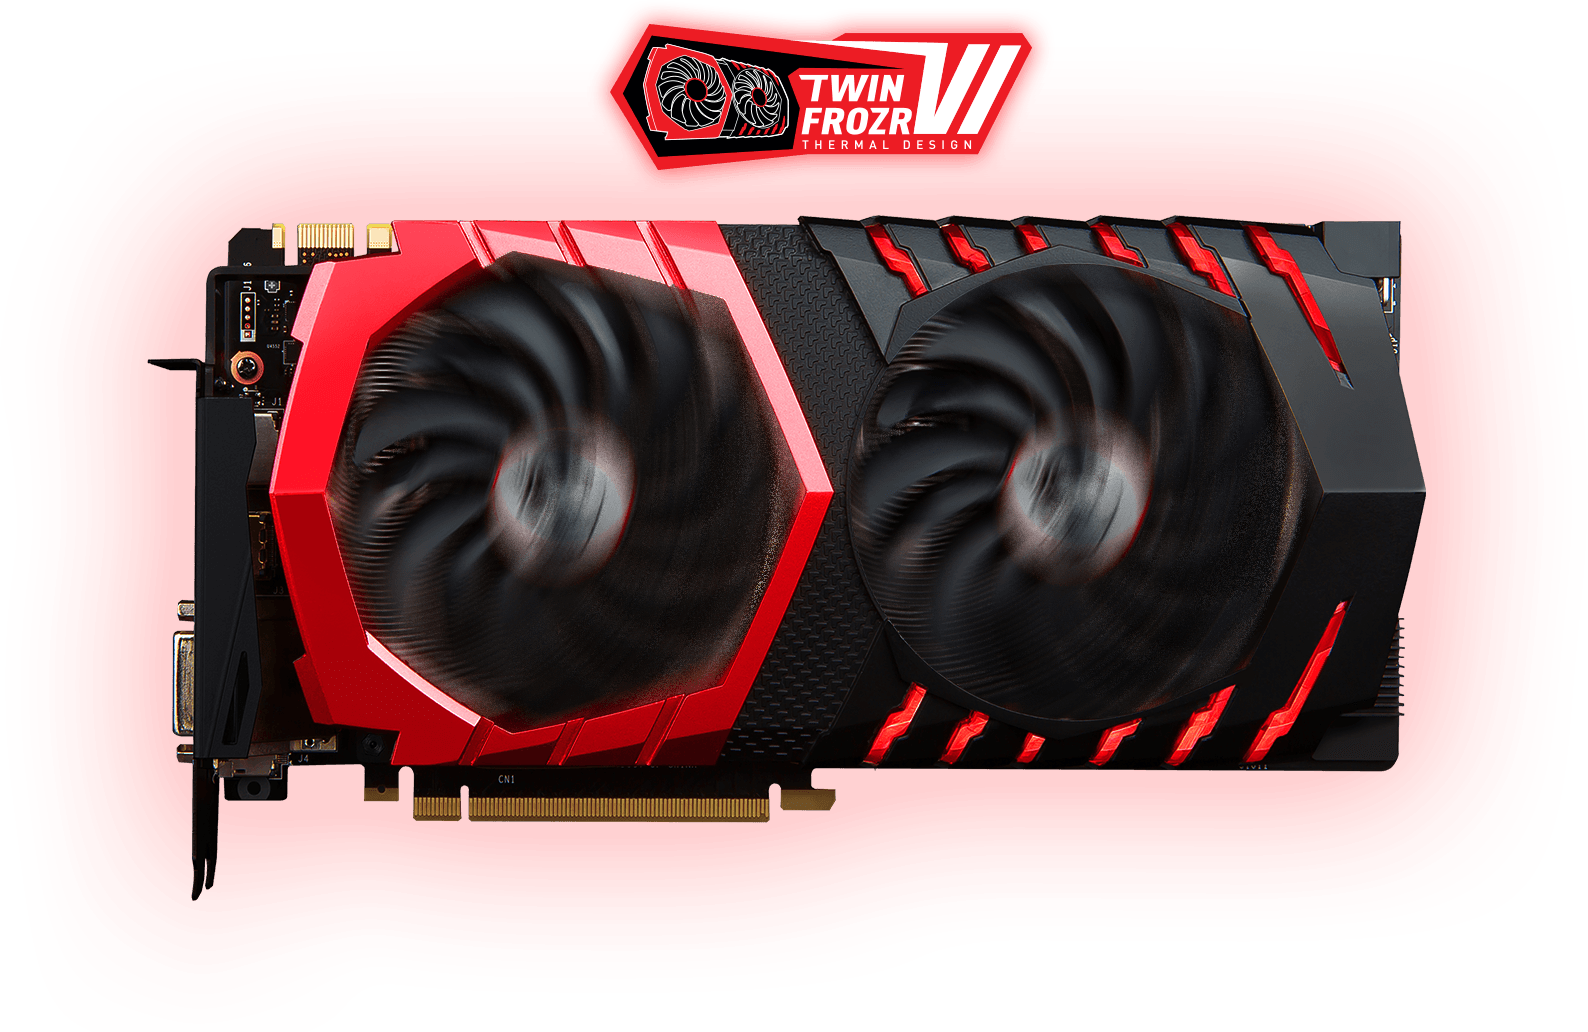 Geforce Gtx 1080 Gaming X 8g Graphics Card The World Leader In